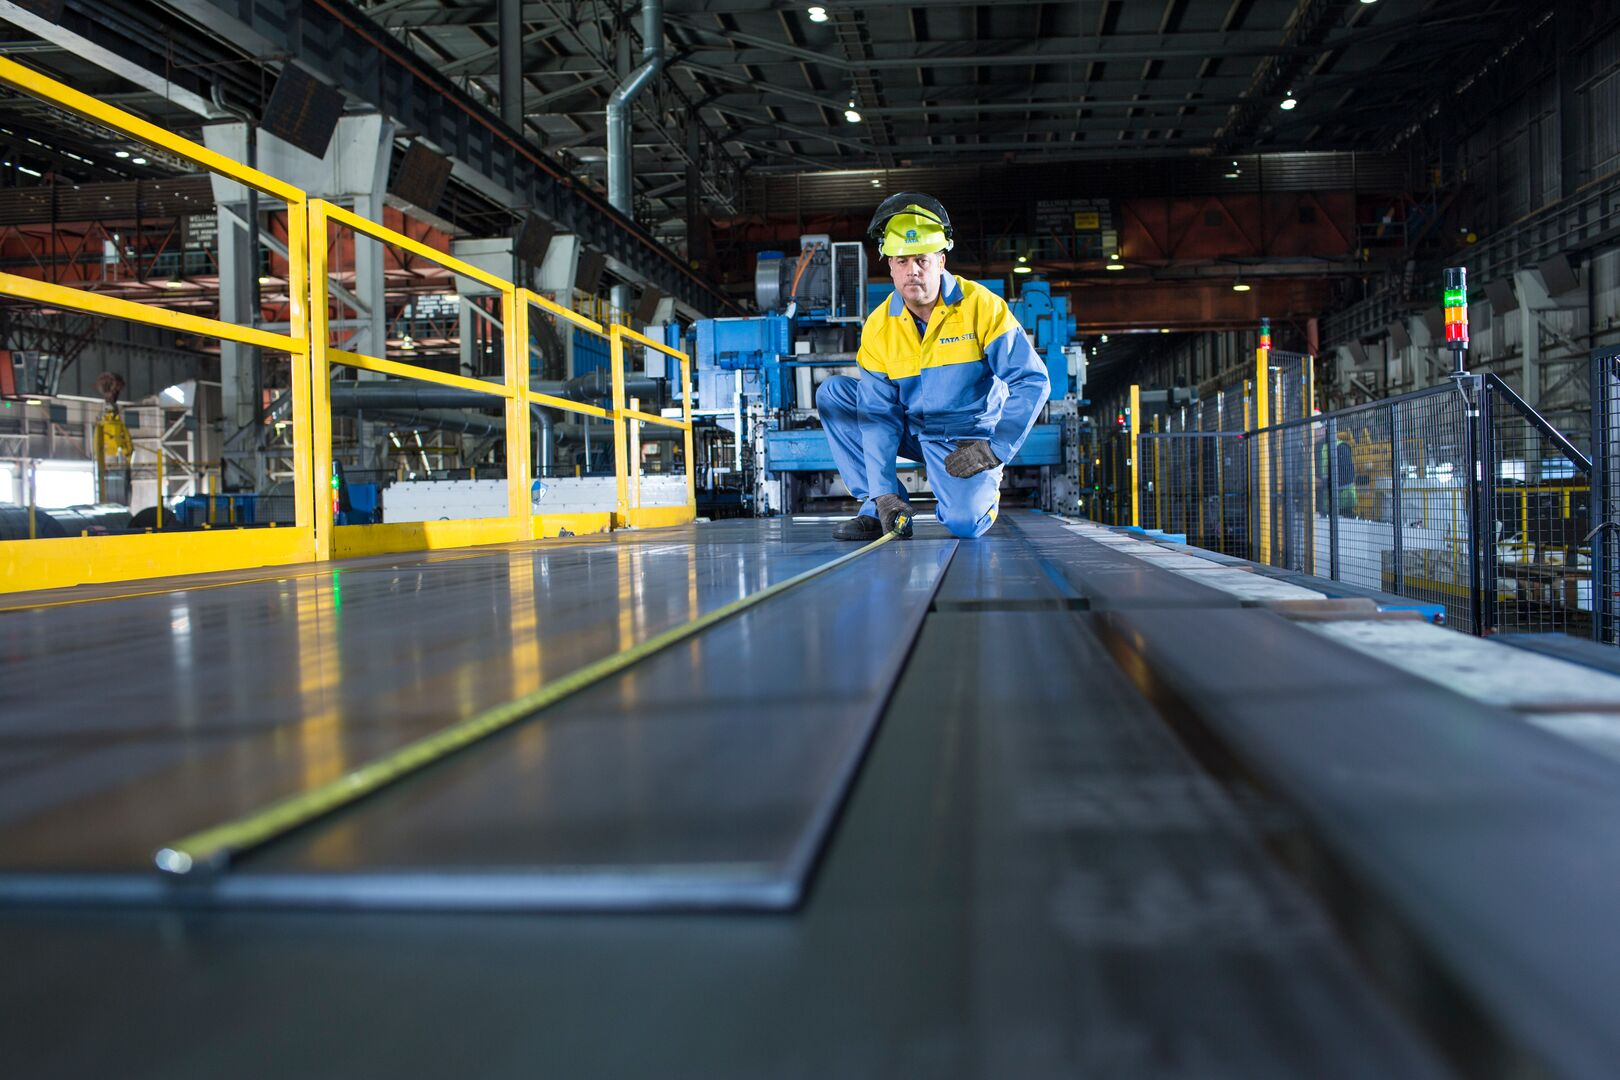 Tata Steel operator measuring steel sheet